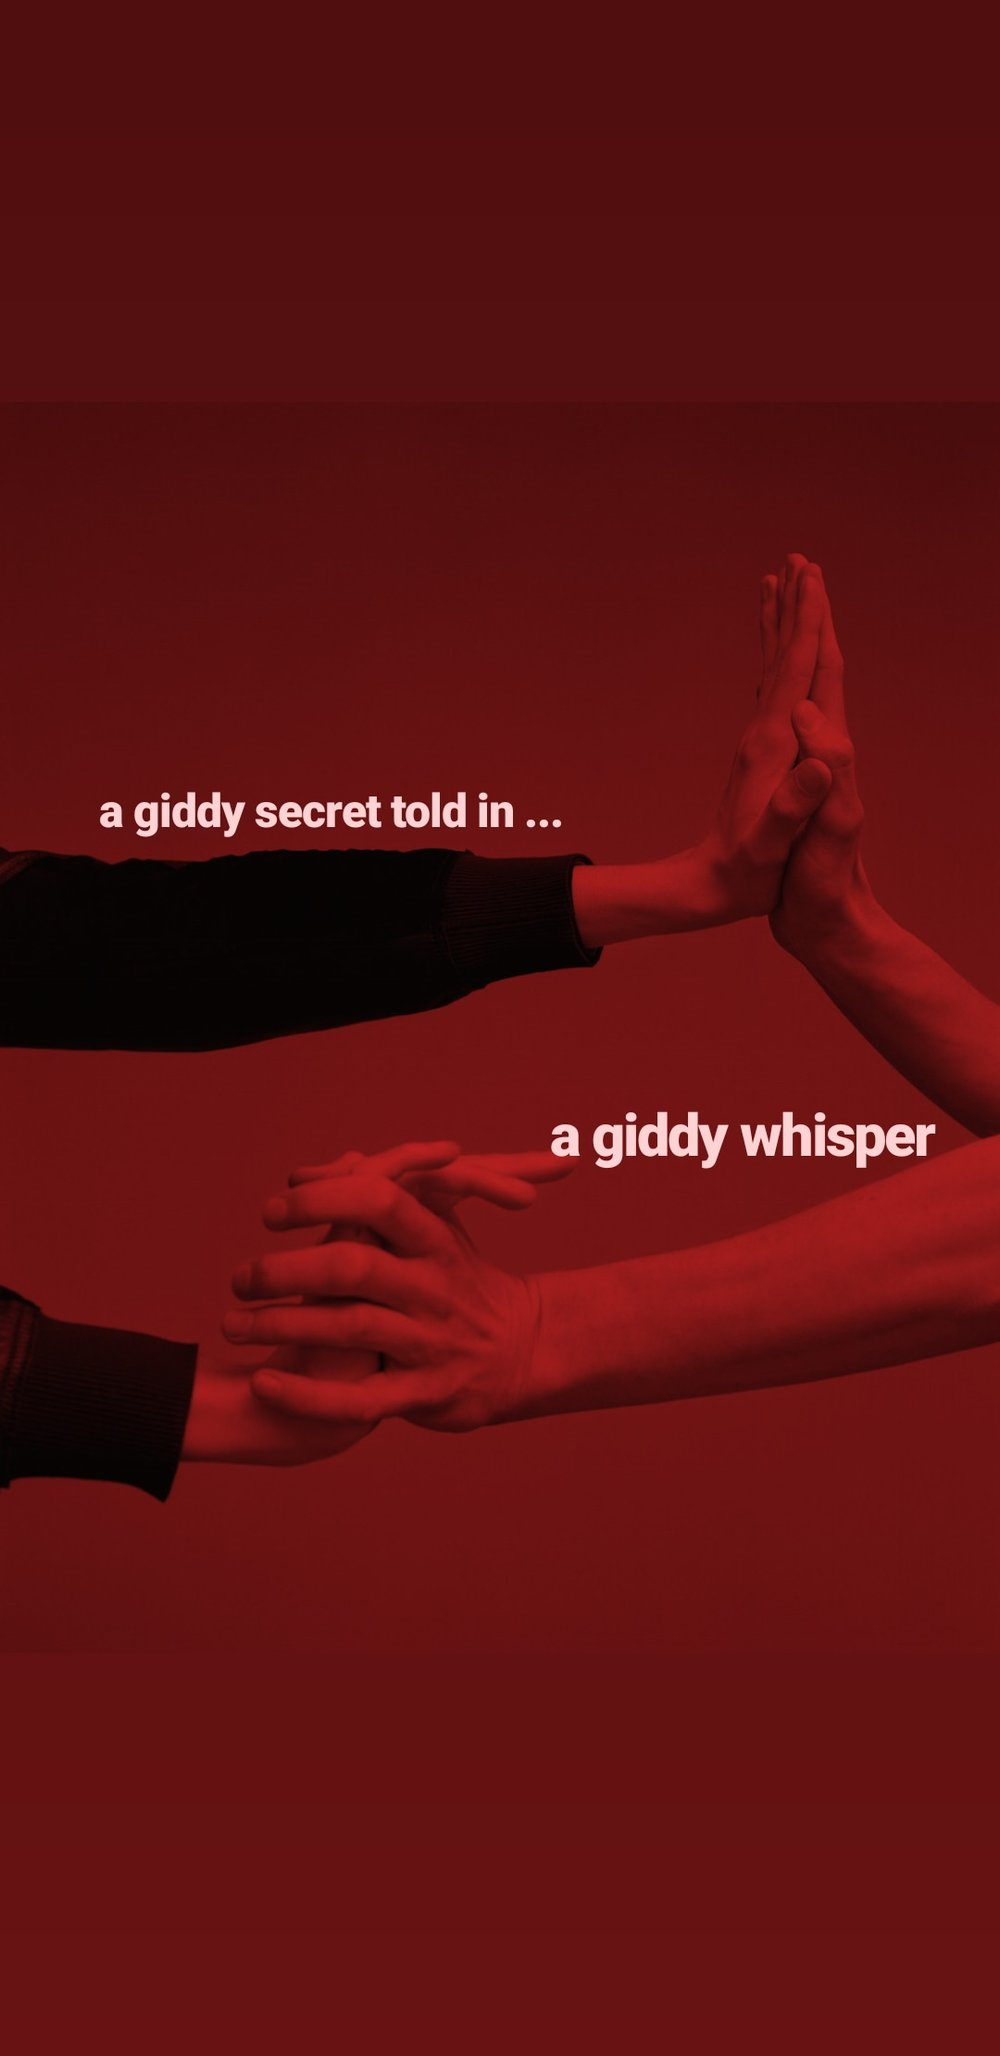 giddy secret.jpg